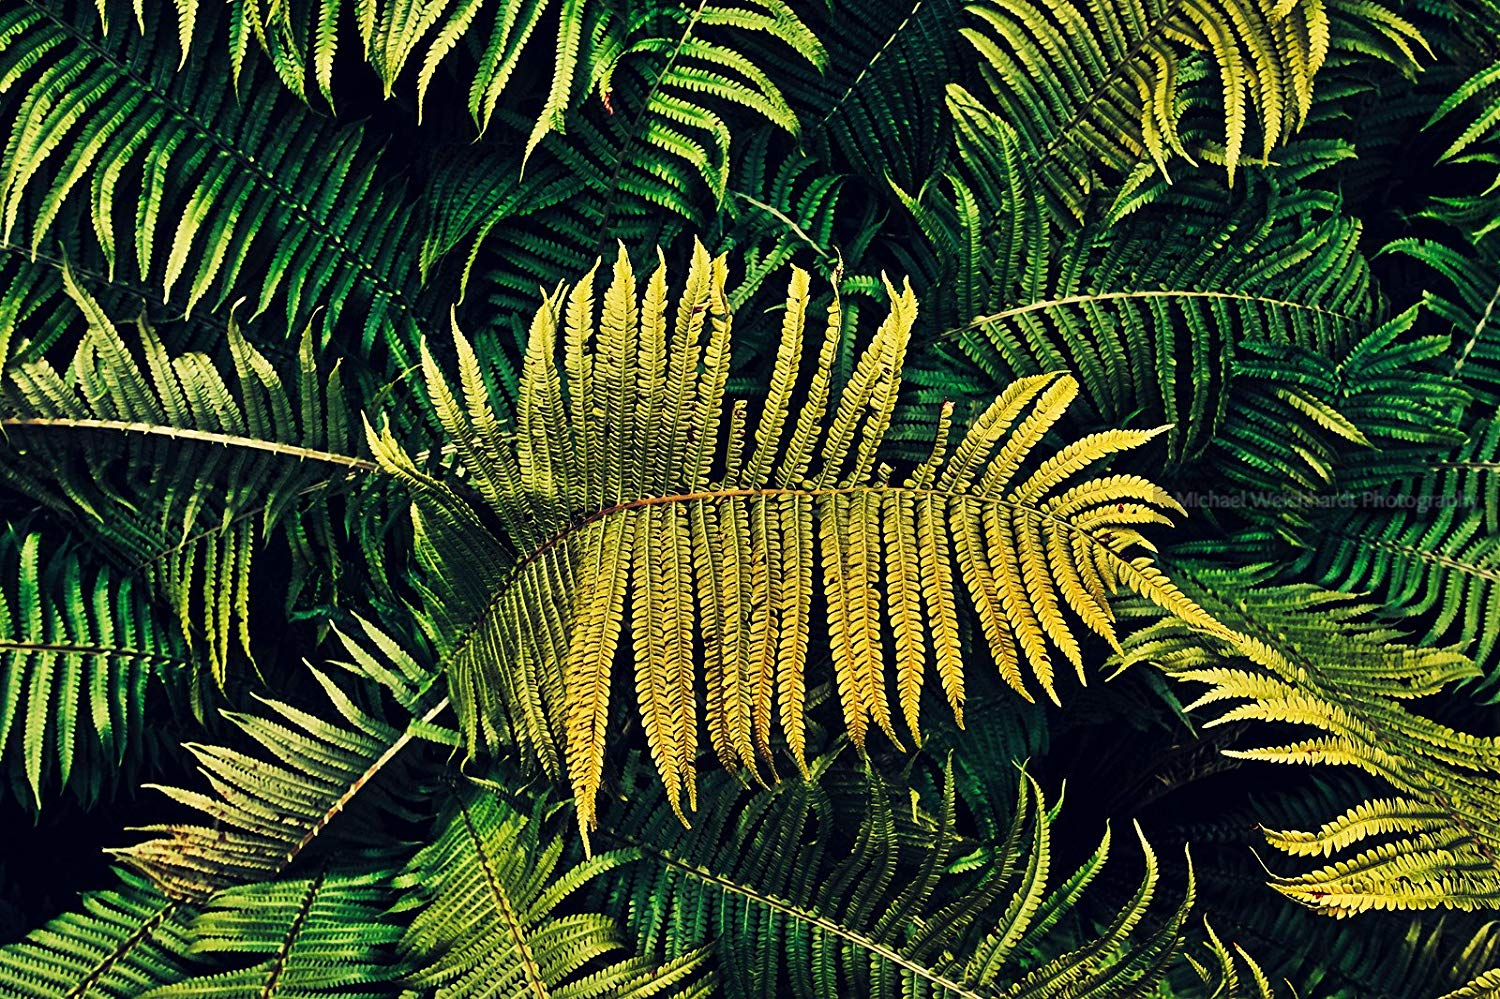 Fern Wallpaper Photo Print, Texture, Professional Photography Print, Nature Wallpaper, Paper & Canvas Prints, Nature Photography